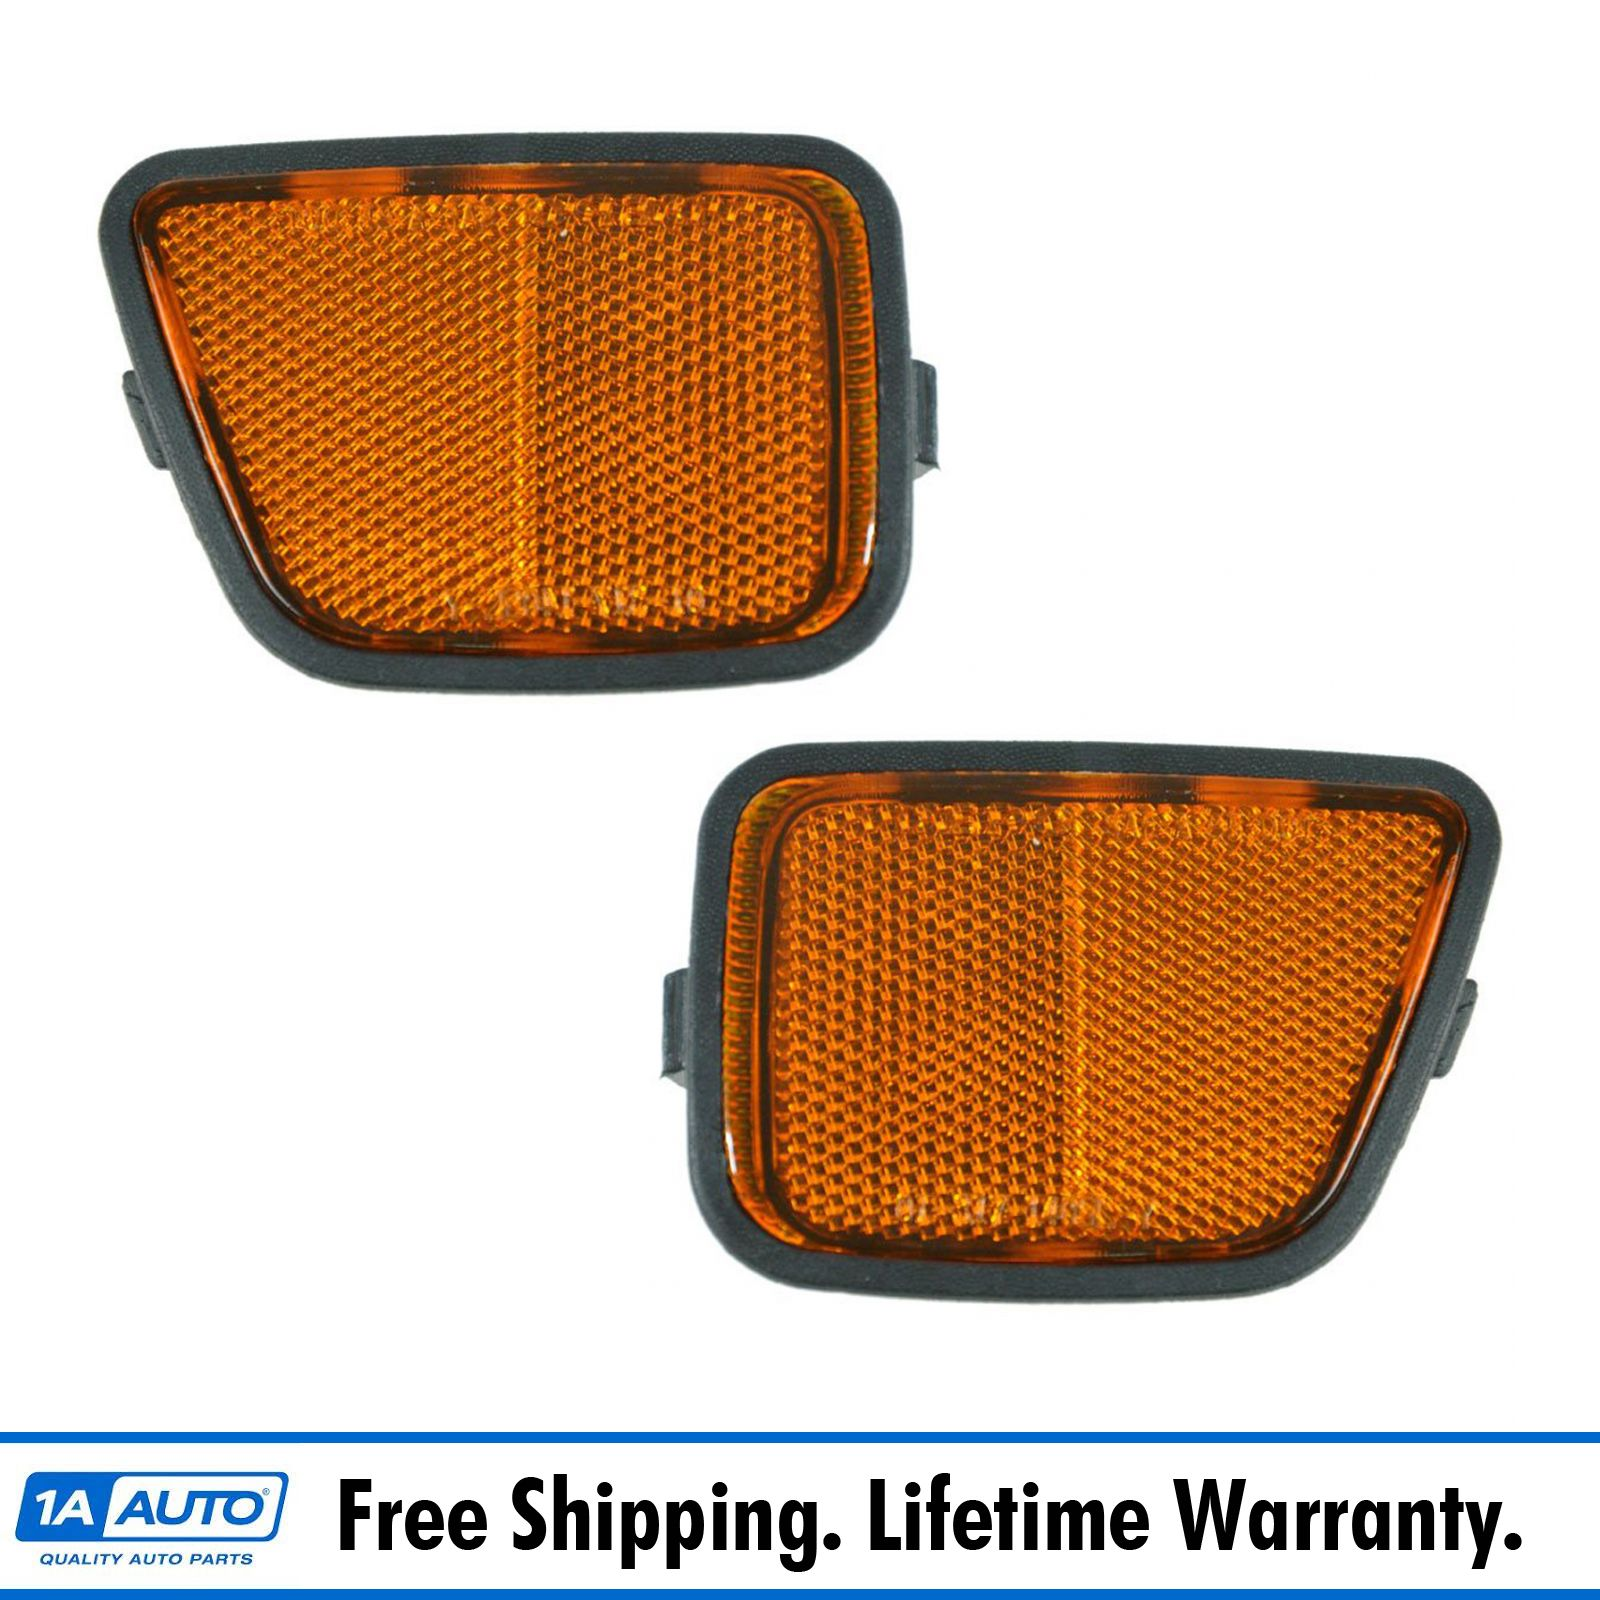 Fits 1997-01 HONDA PRELUDE Signal Light Lamp Pair Left and Right Set